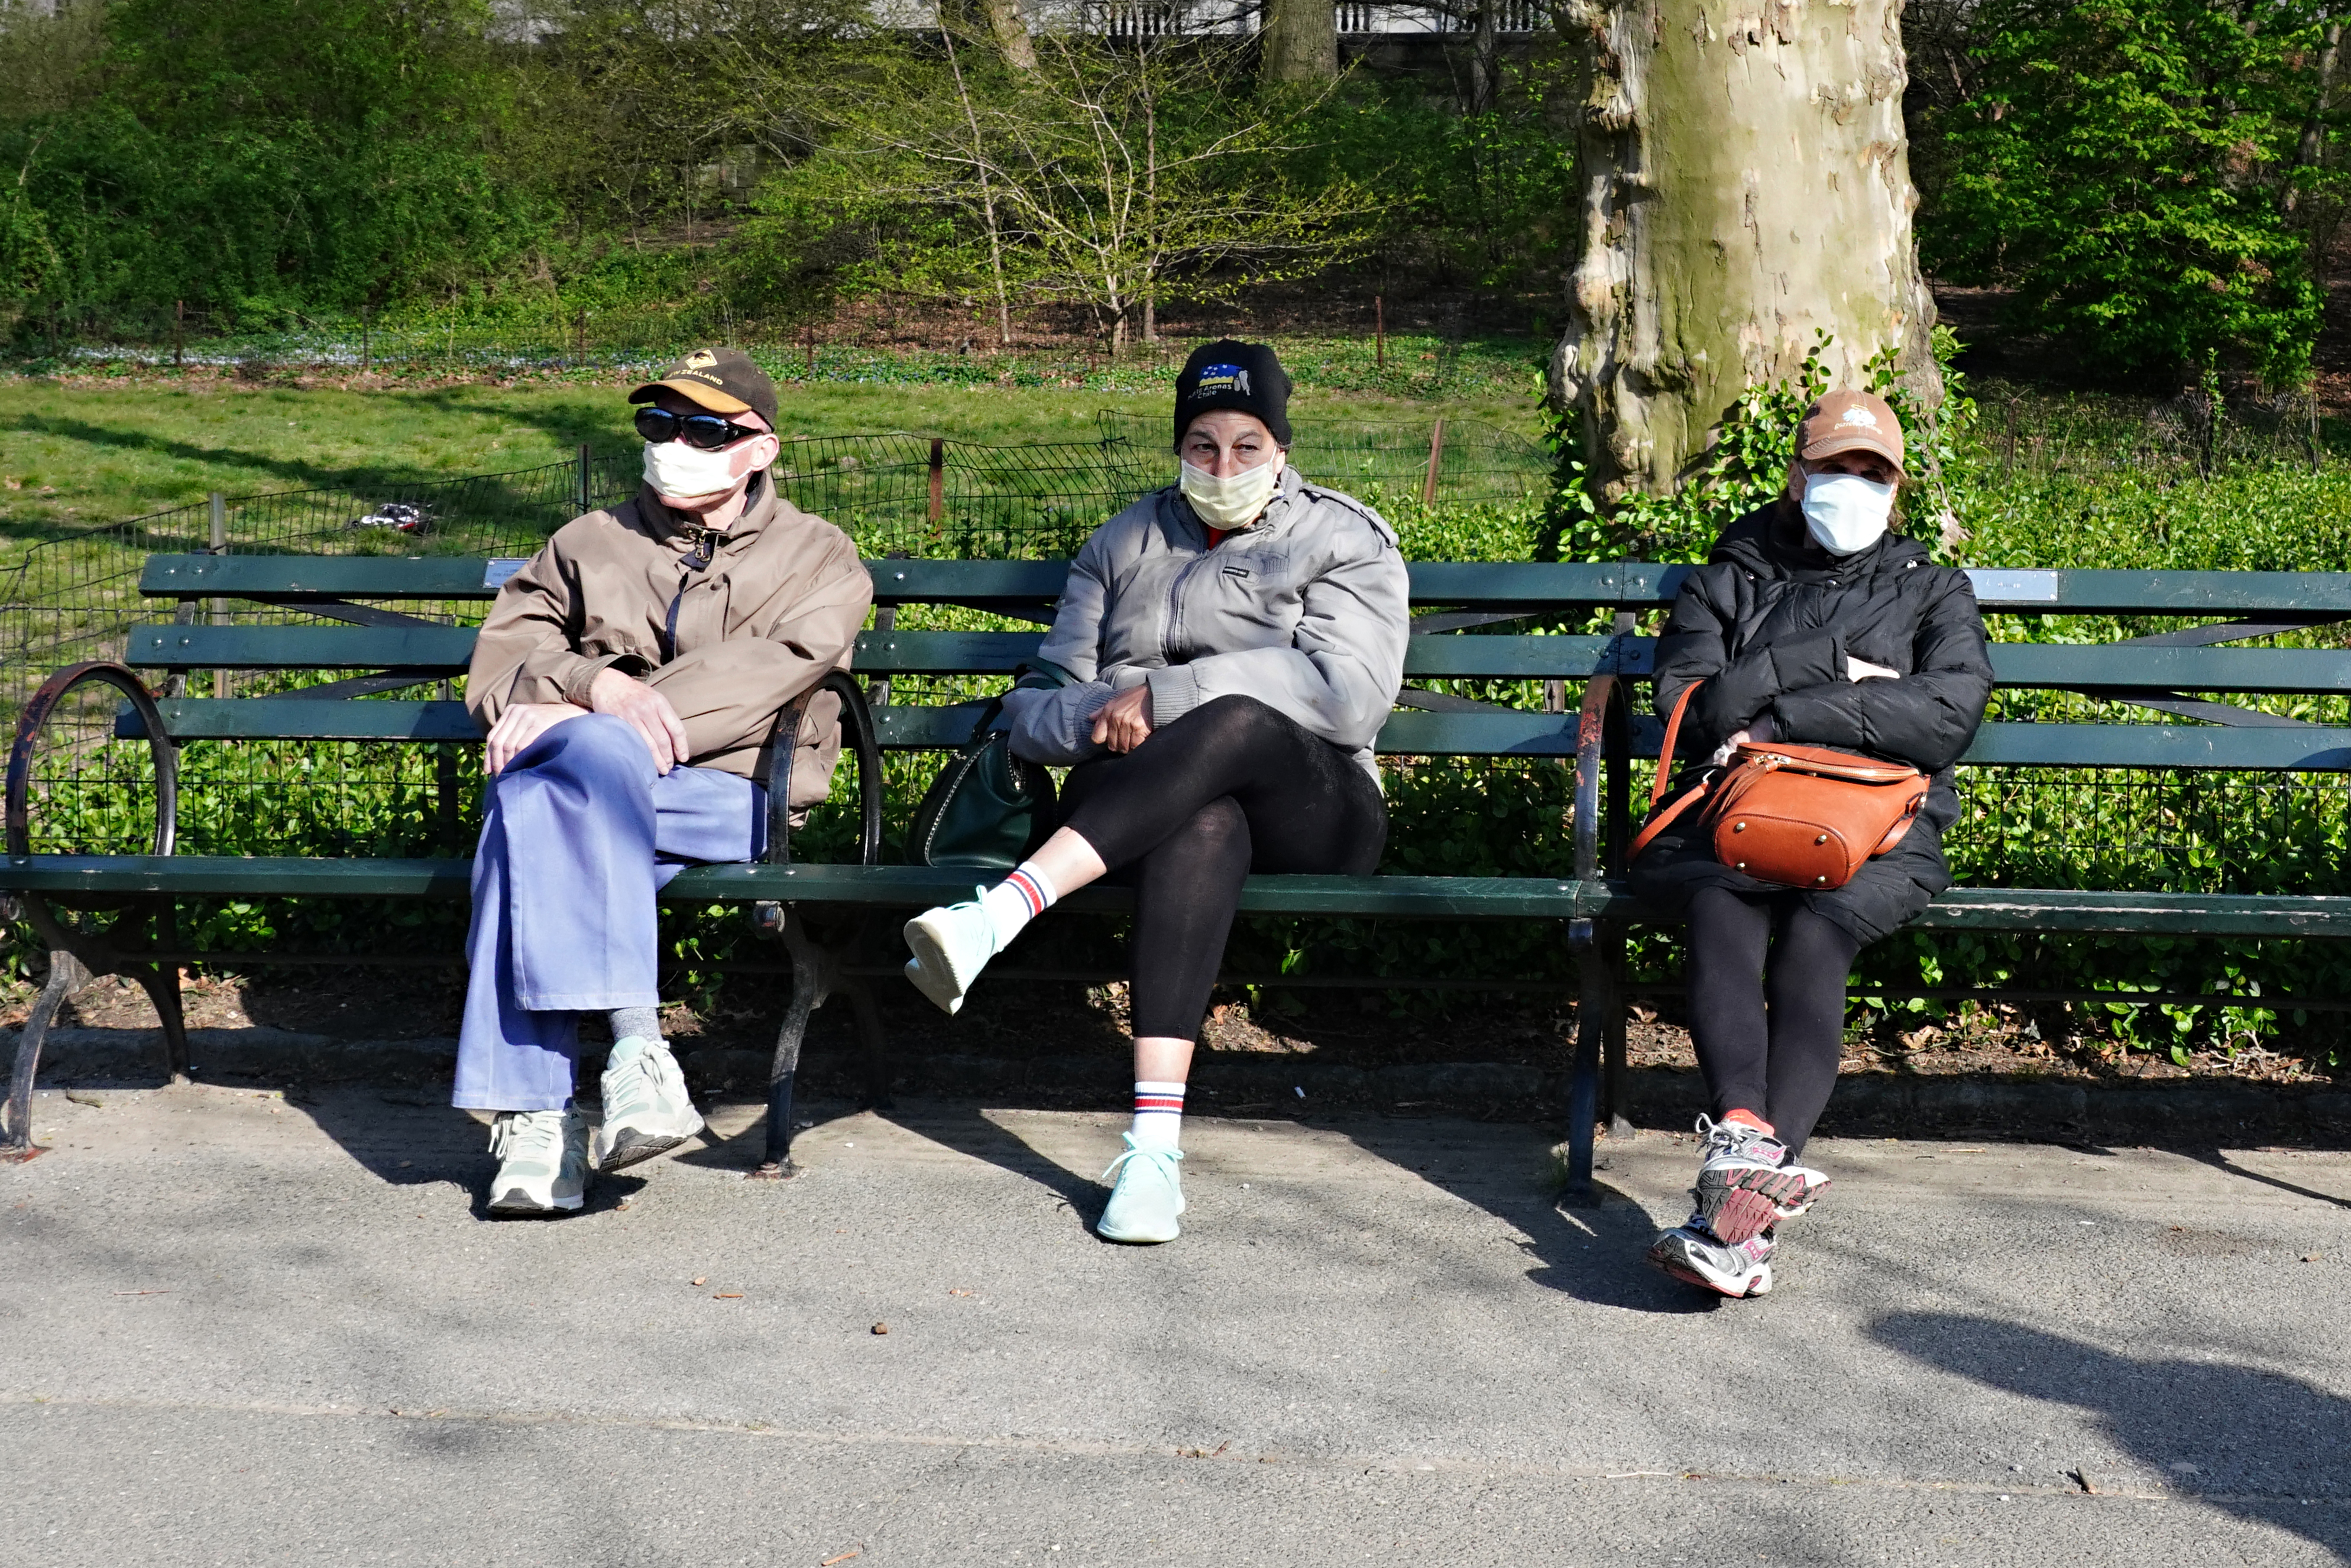 New Yorkers heed advice to wear masks to help control the spread of the coronavirus as they sit in Central Park in New York City on April 11, 2020.